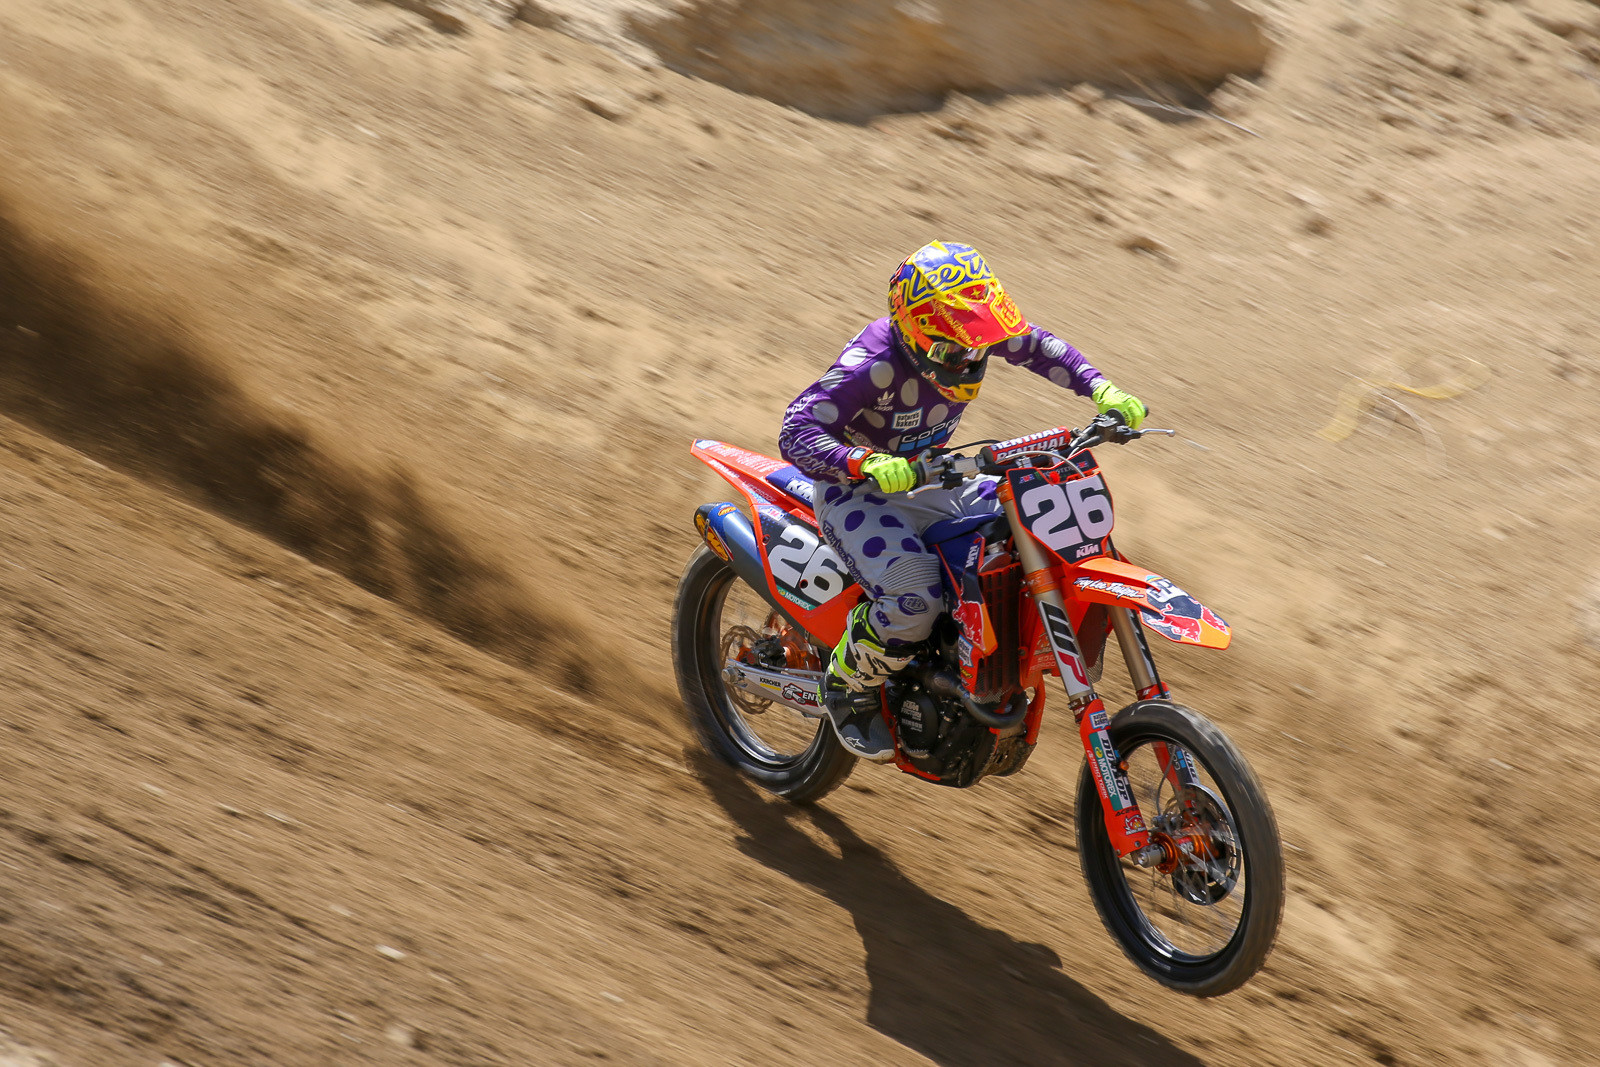 Alex Martin has been on the sidelines throughout the Supercross season, and it was good to see him getting after it on the course at Glen Helen. I don't know exactly what it is in this shot, but his position on the bike here kind of reminds me of Jeff Ward back in the day.